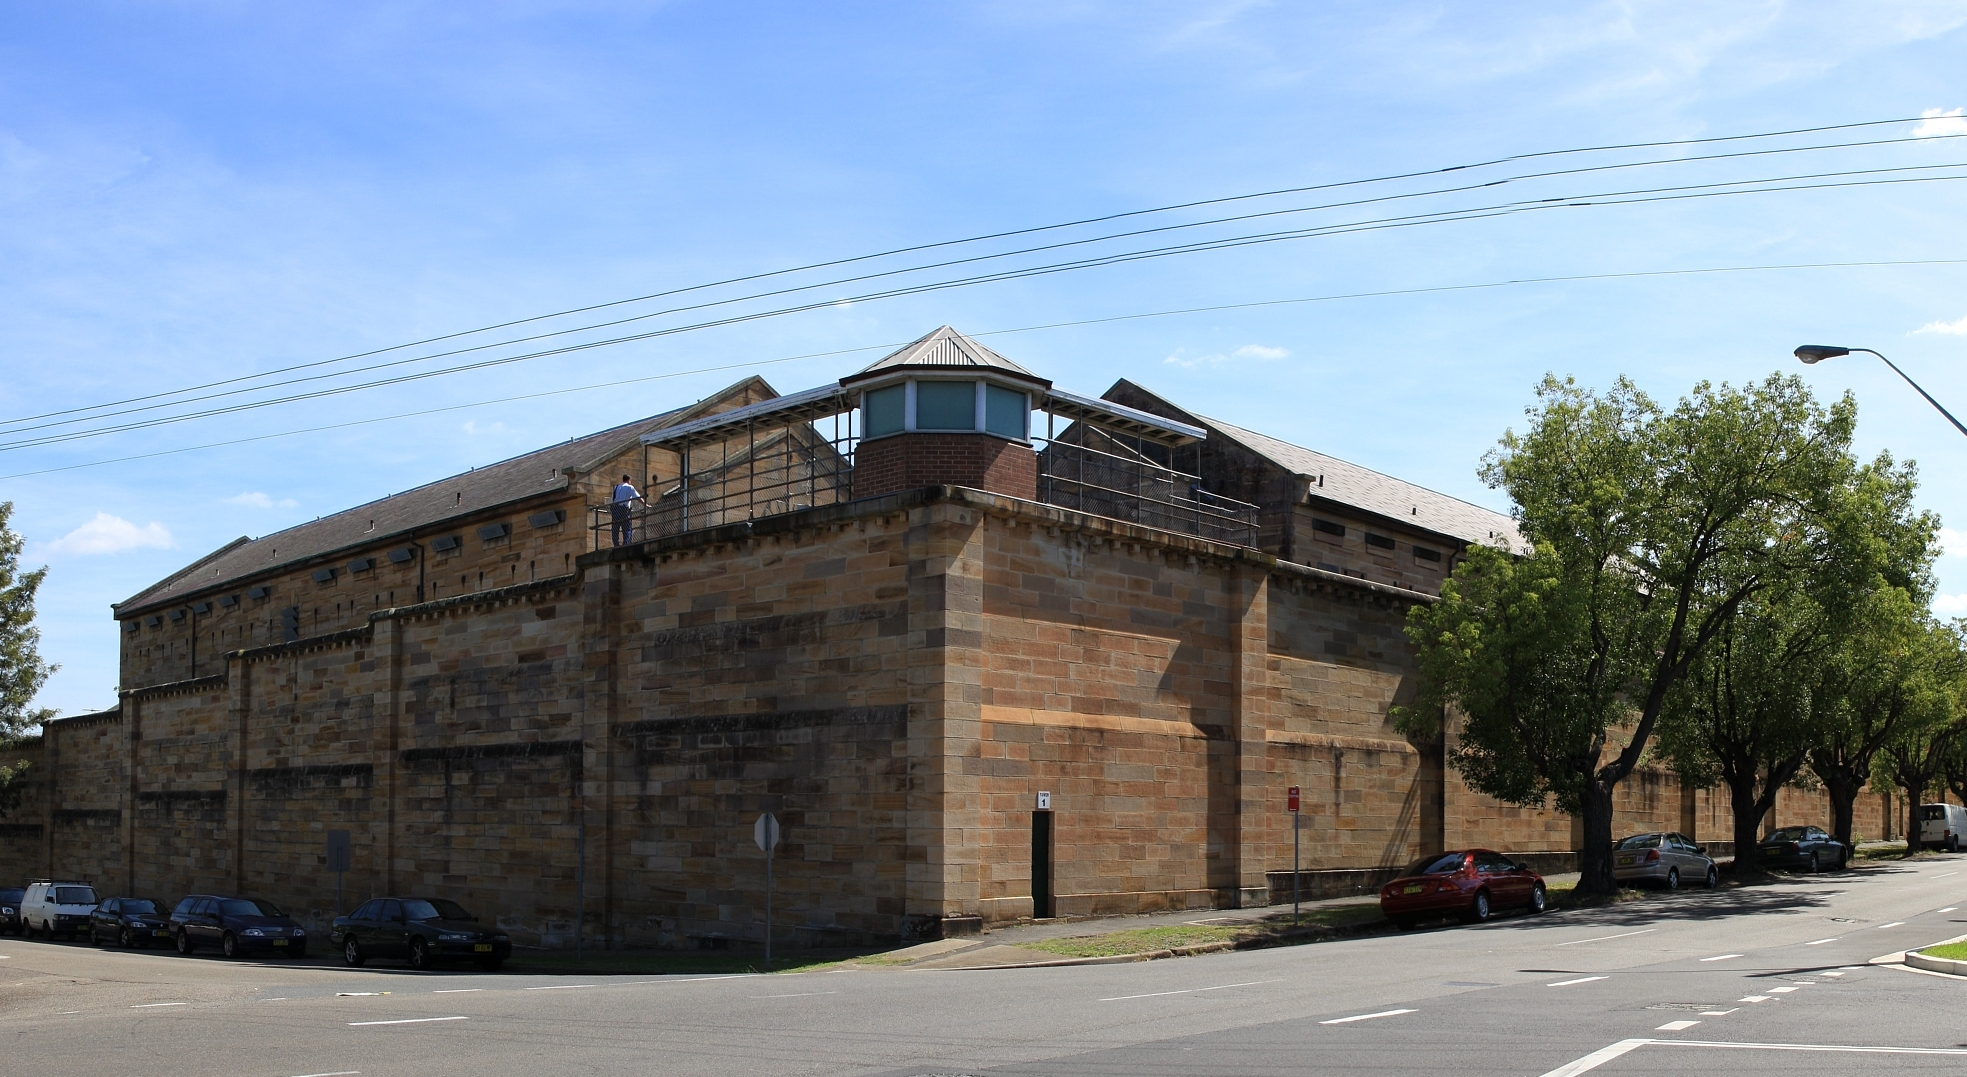 contaband sources in australian prison Globalheadlinesuk pulls rss feeds from major news sites from around the world and puts them  other news sources photography  the australian the daily express .